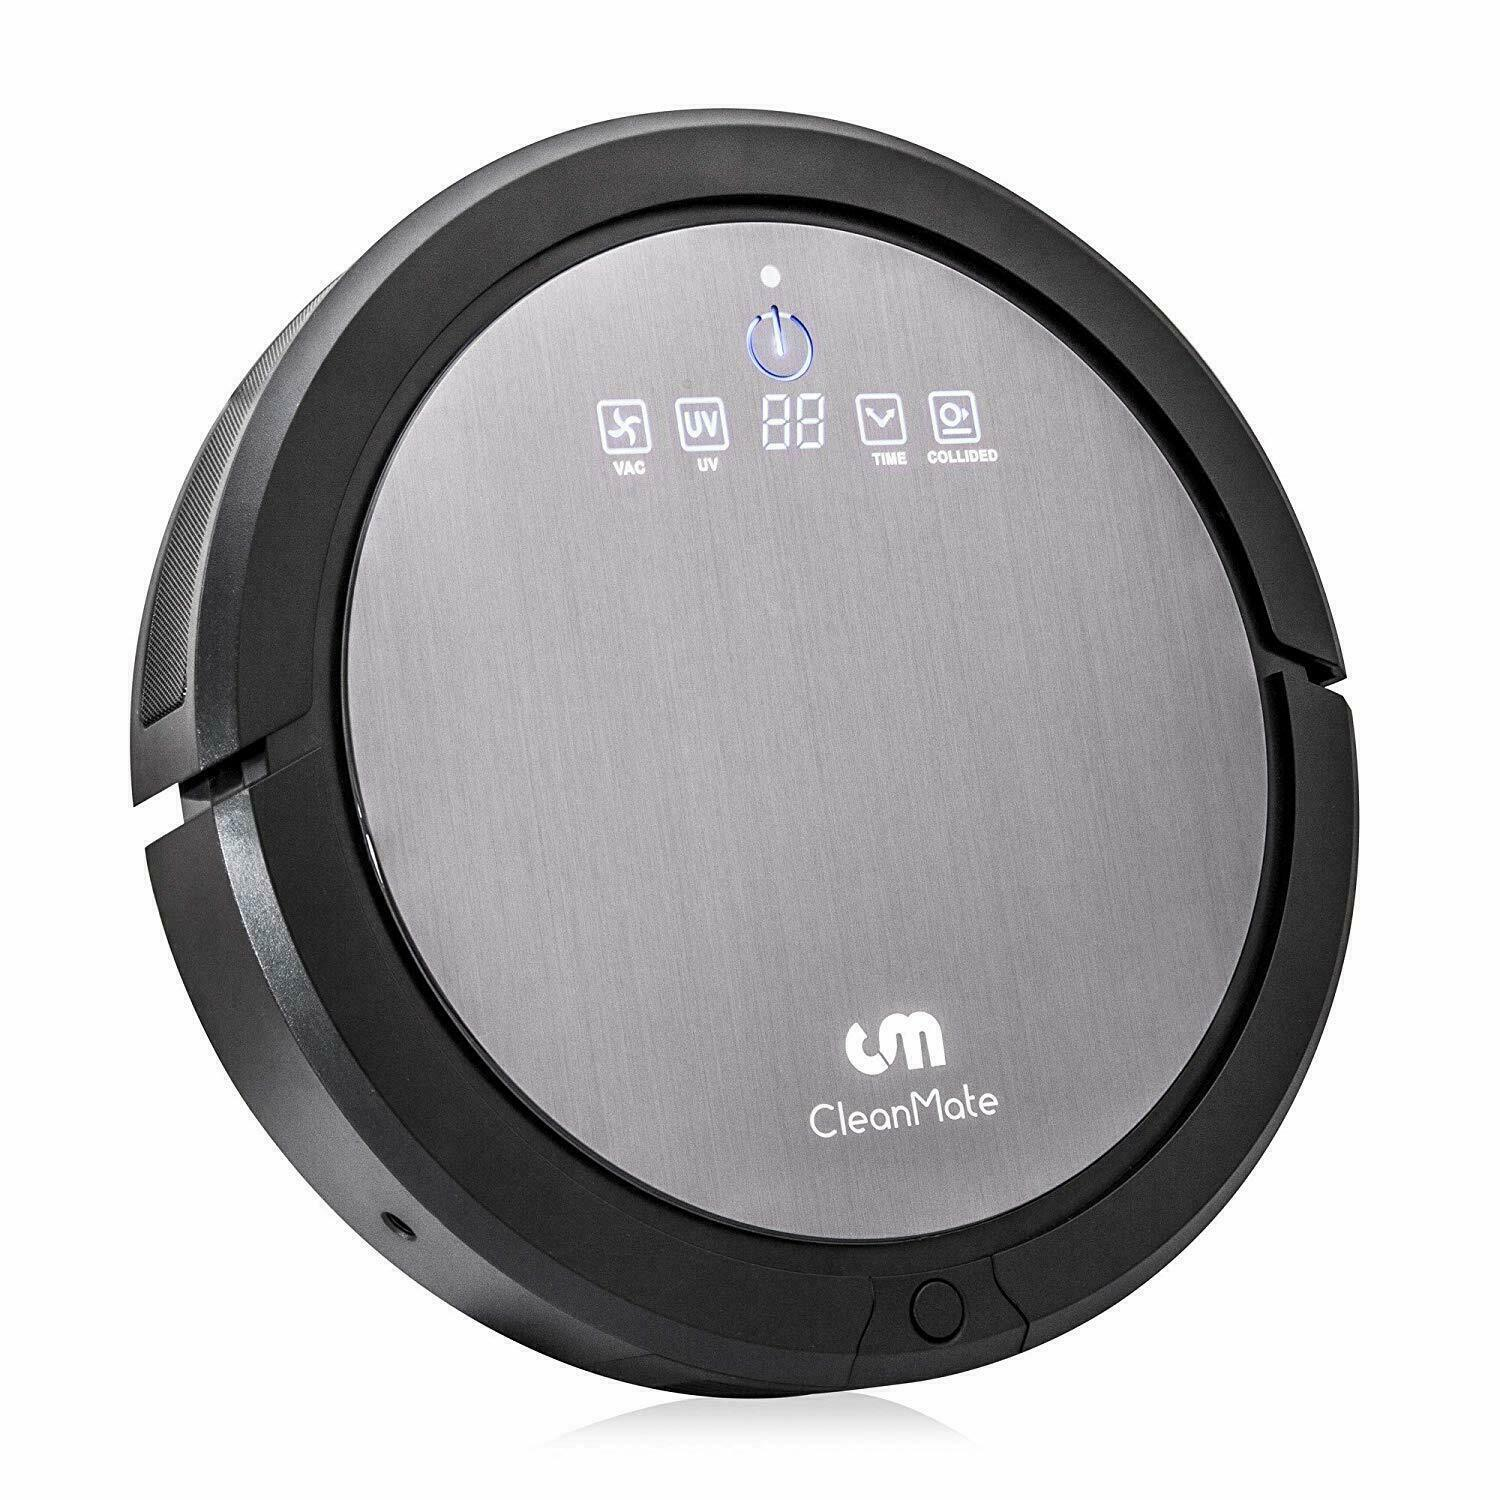 BRAND NEW - Cleanmate Cm3 Robot Vacuum Cleaner for carpet an